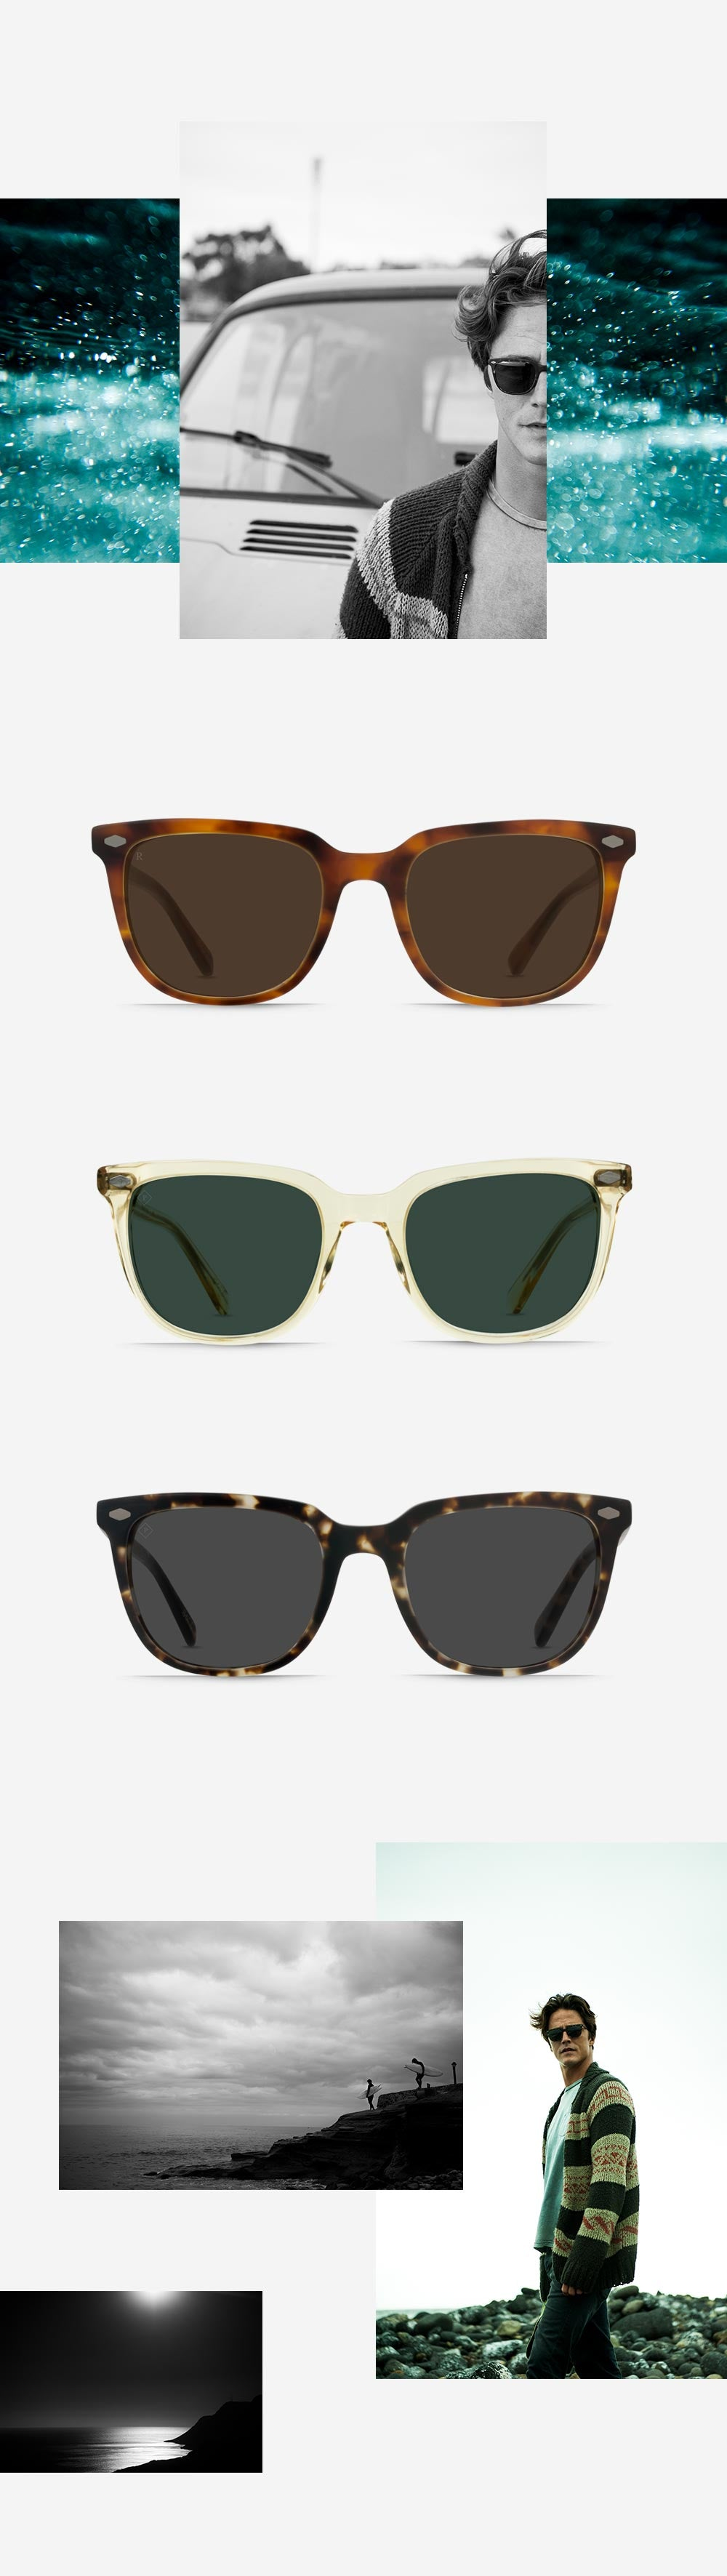 Introducing the Arlo in new Essential colors